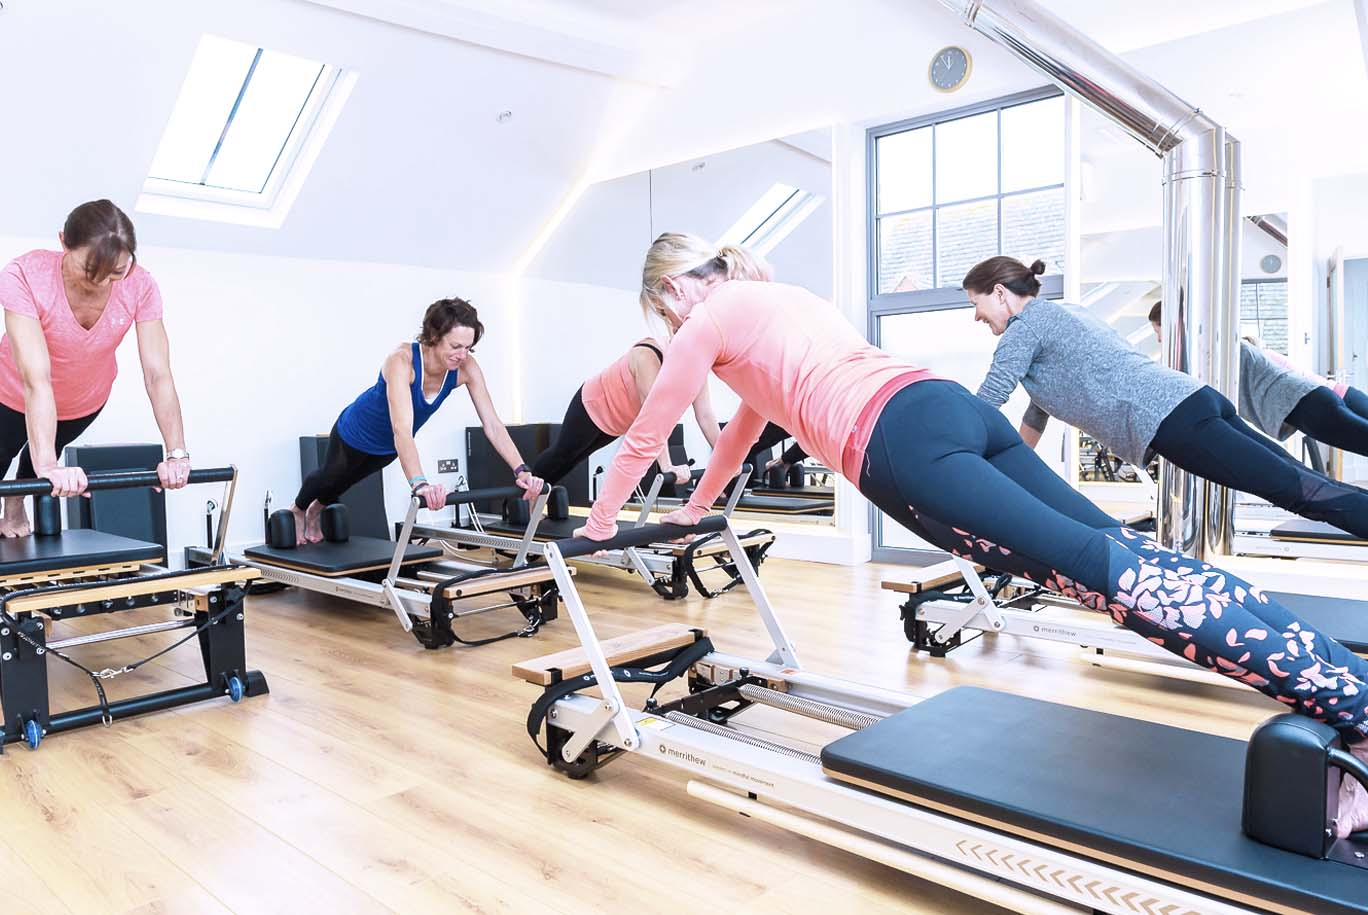 shona atkin Beginners Reformer classes